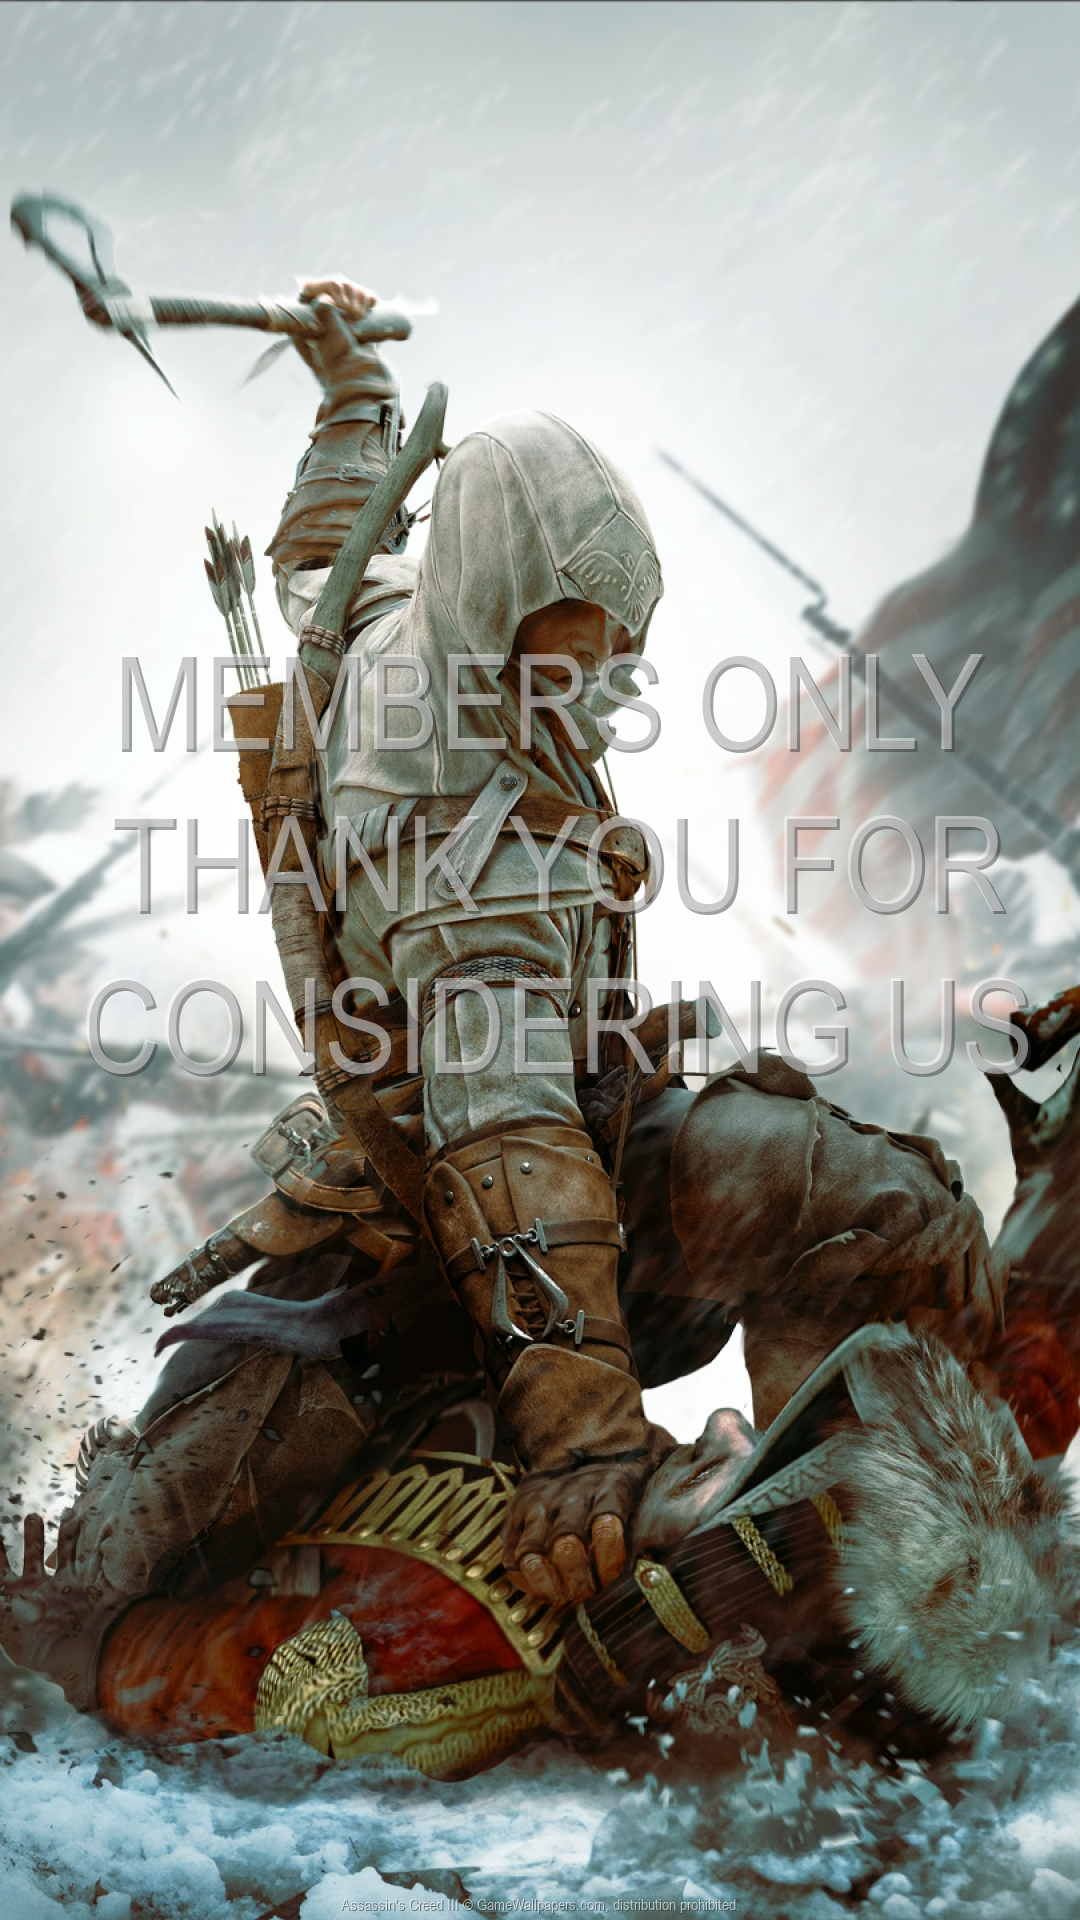 Assassin's Creed III 1920x1080 Mobile wallpaper or background 07